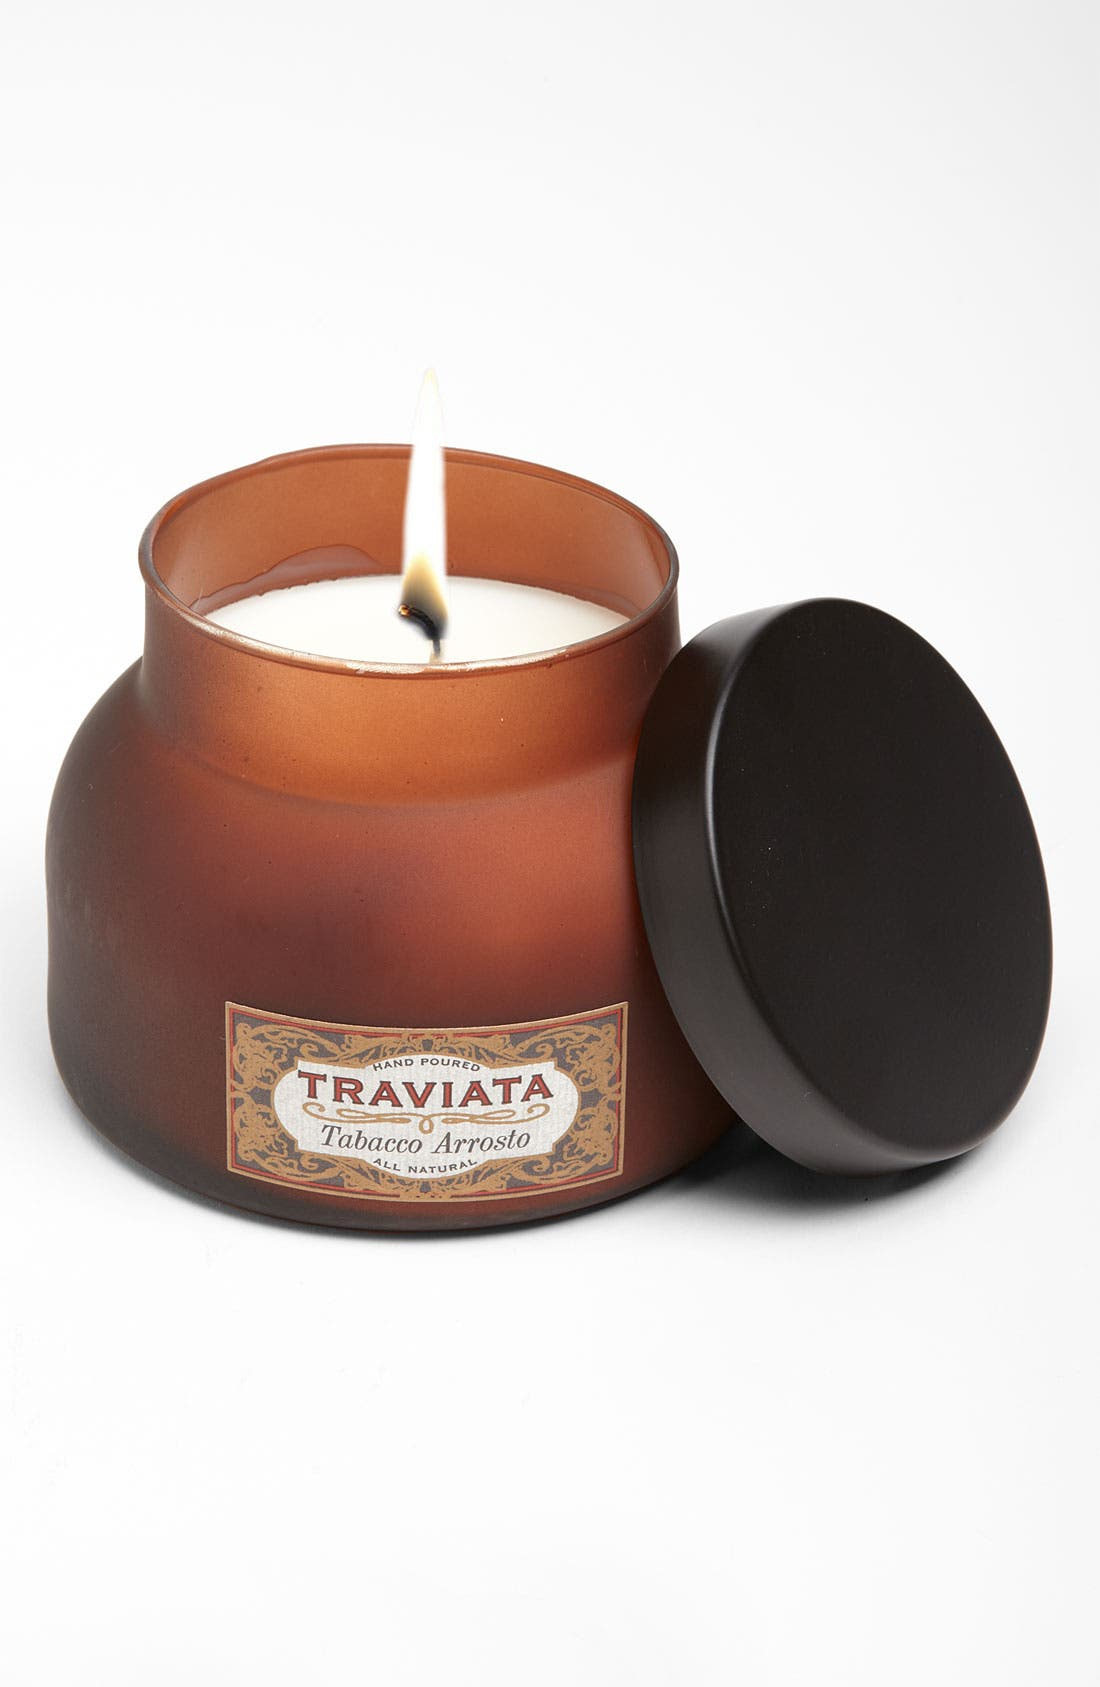 Alternate Image 1 Selected - Aspen Bay Candles 'Traviata' Jar Candle